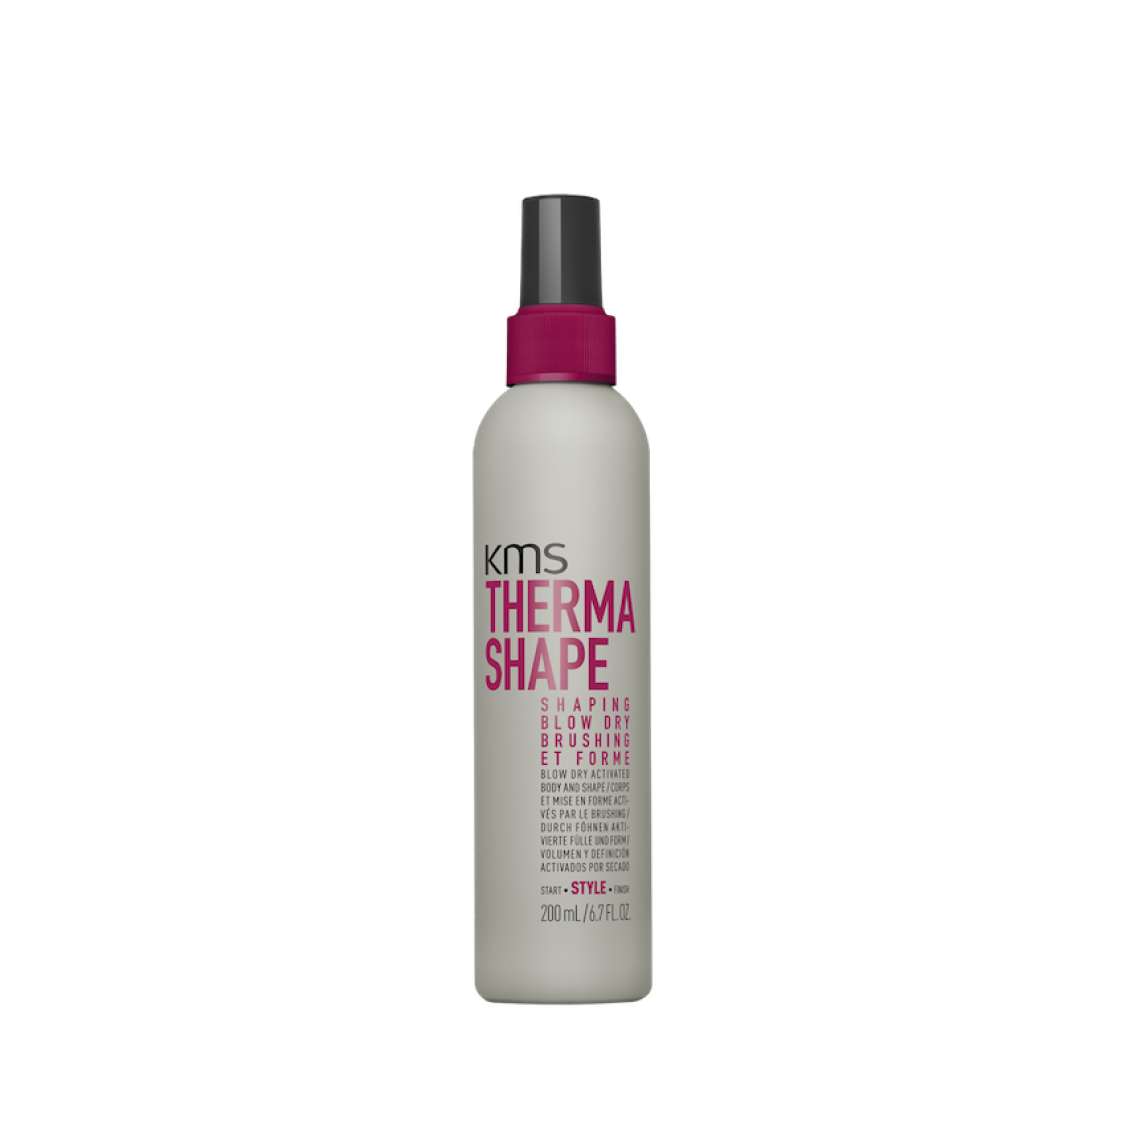 KMS - Therma Shape Shaping Blow Dry 200ml